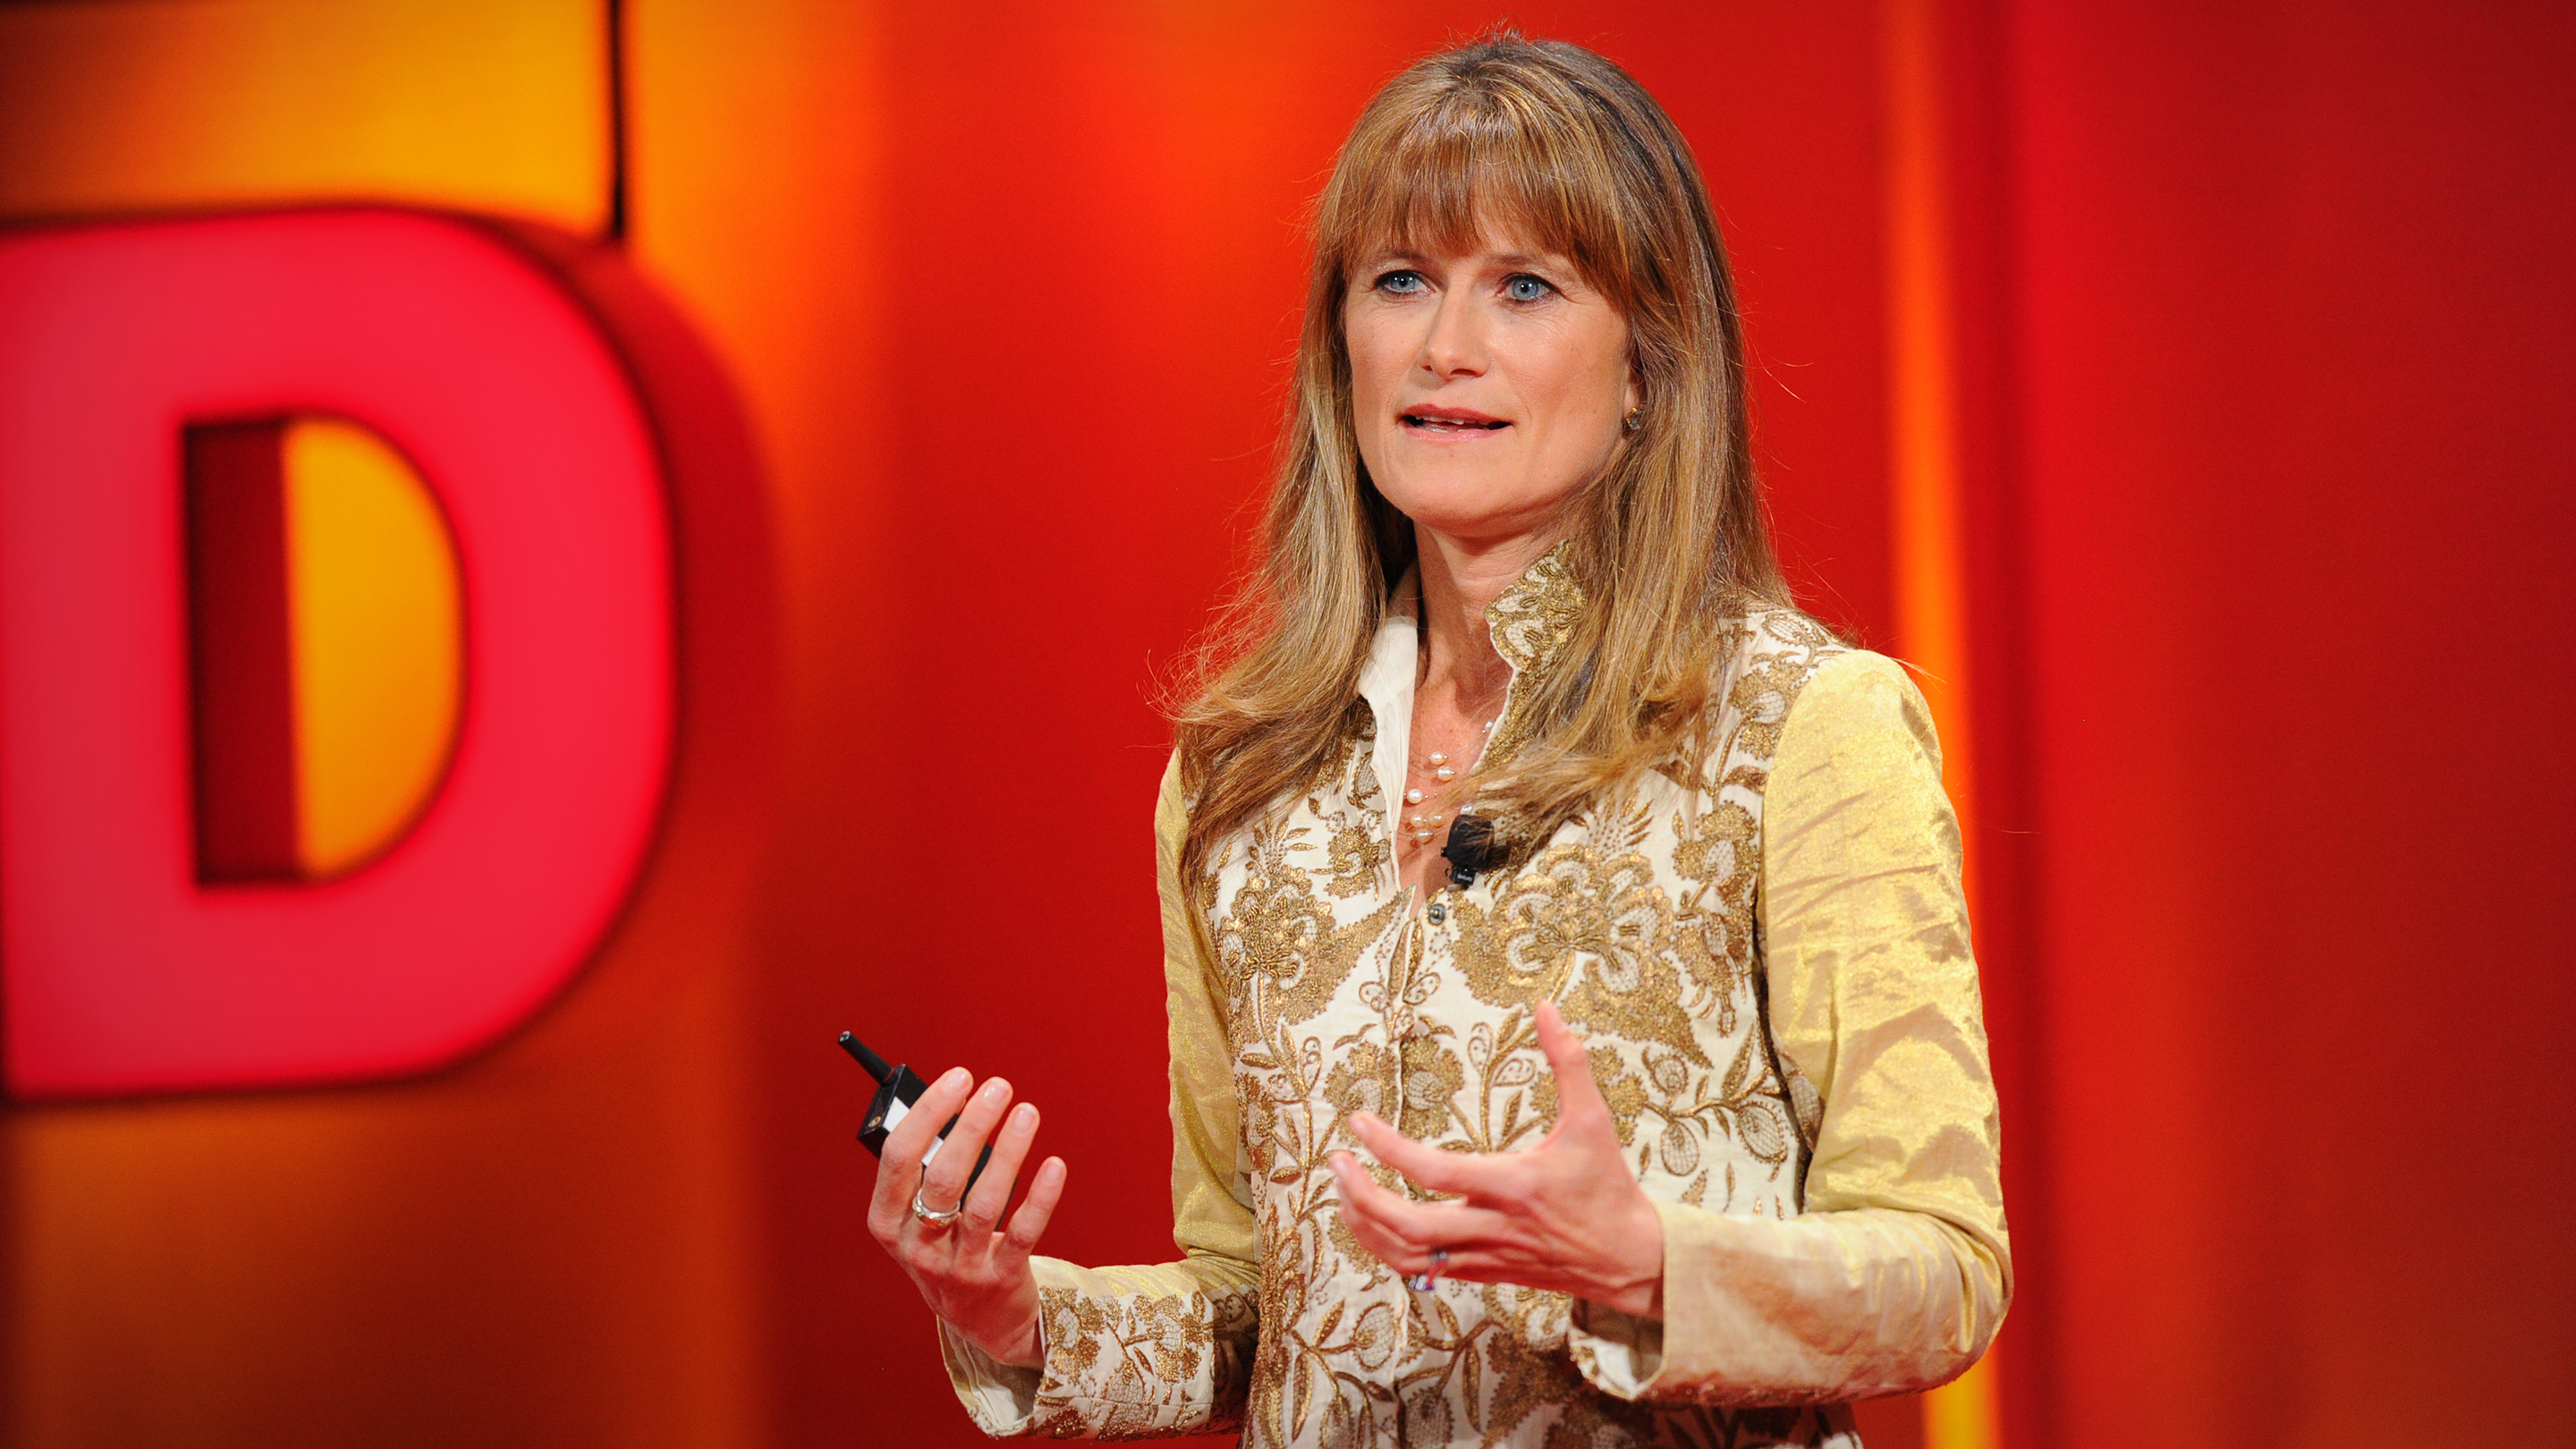 Jackqueline Novogratz at TEDWomen in 2010, where she gave her fifth TED Talk after many years of public speaking. Photo by James Duncan Davidson